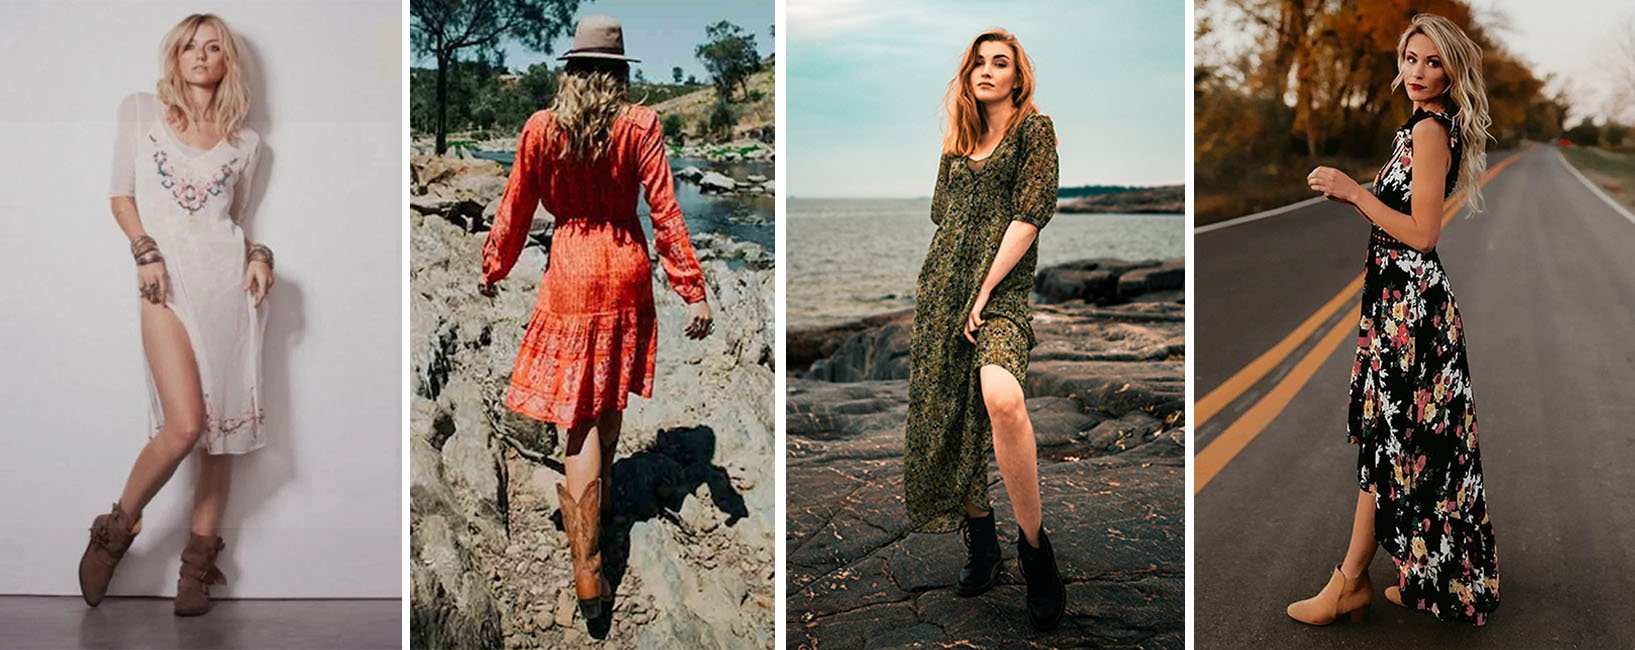 Booties with or without heels for a bohemian style